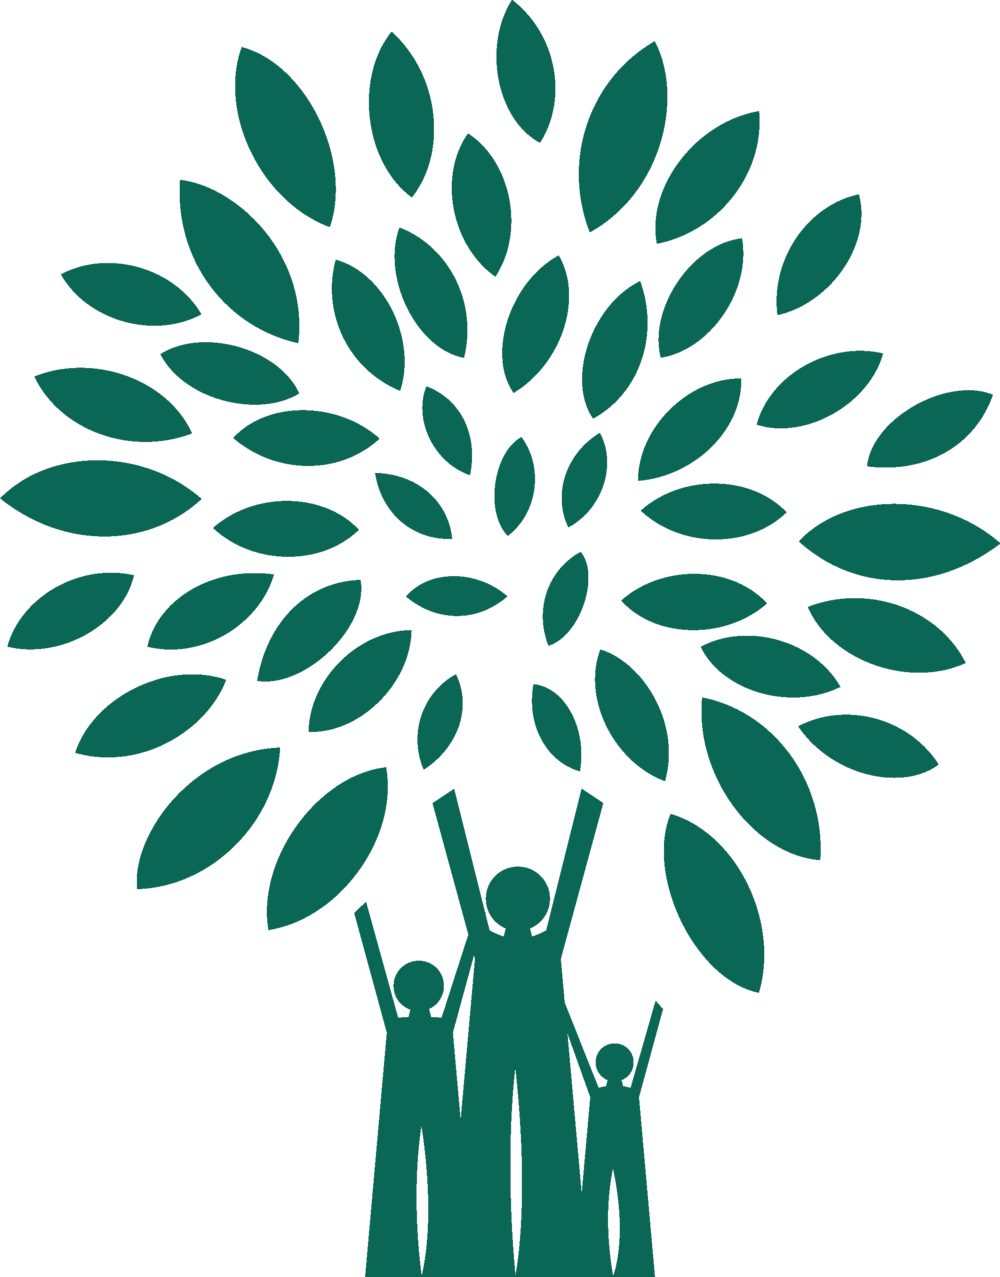 Tree_logo_color-green.png